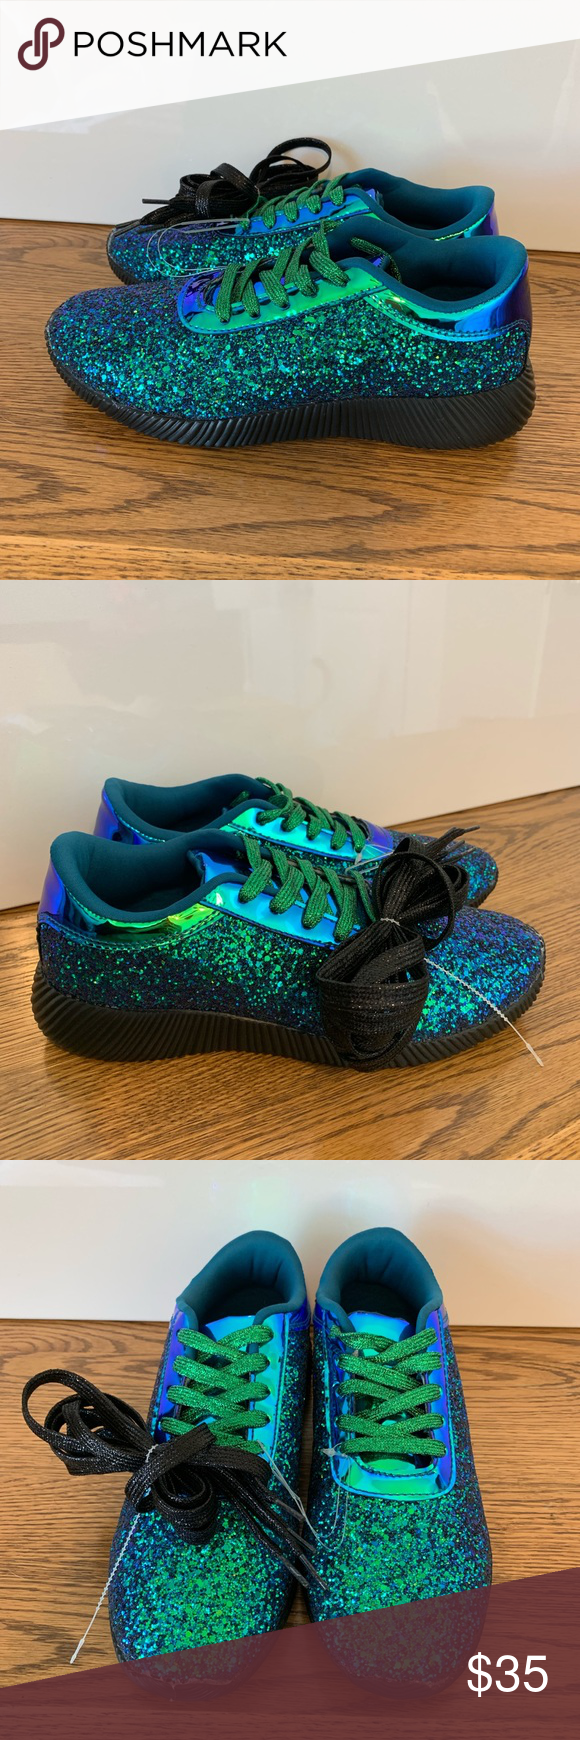 1492df4ab80e NWT 🧜🏼 ♀ Mermaid Glitter Tennis Shoes 🧜🏼 ♀ Brand New Mermaid Glitter  Tennis Shoes With Extra pair of black laces Size 8.5 Forever Shoes Sneakers